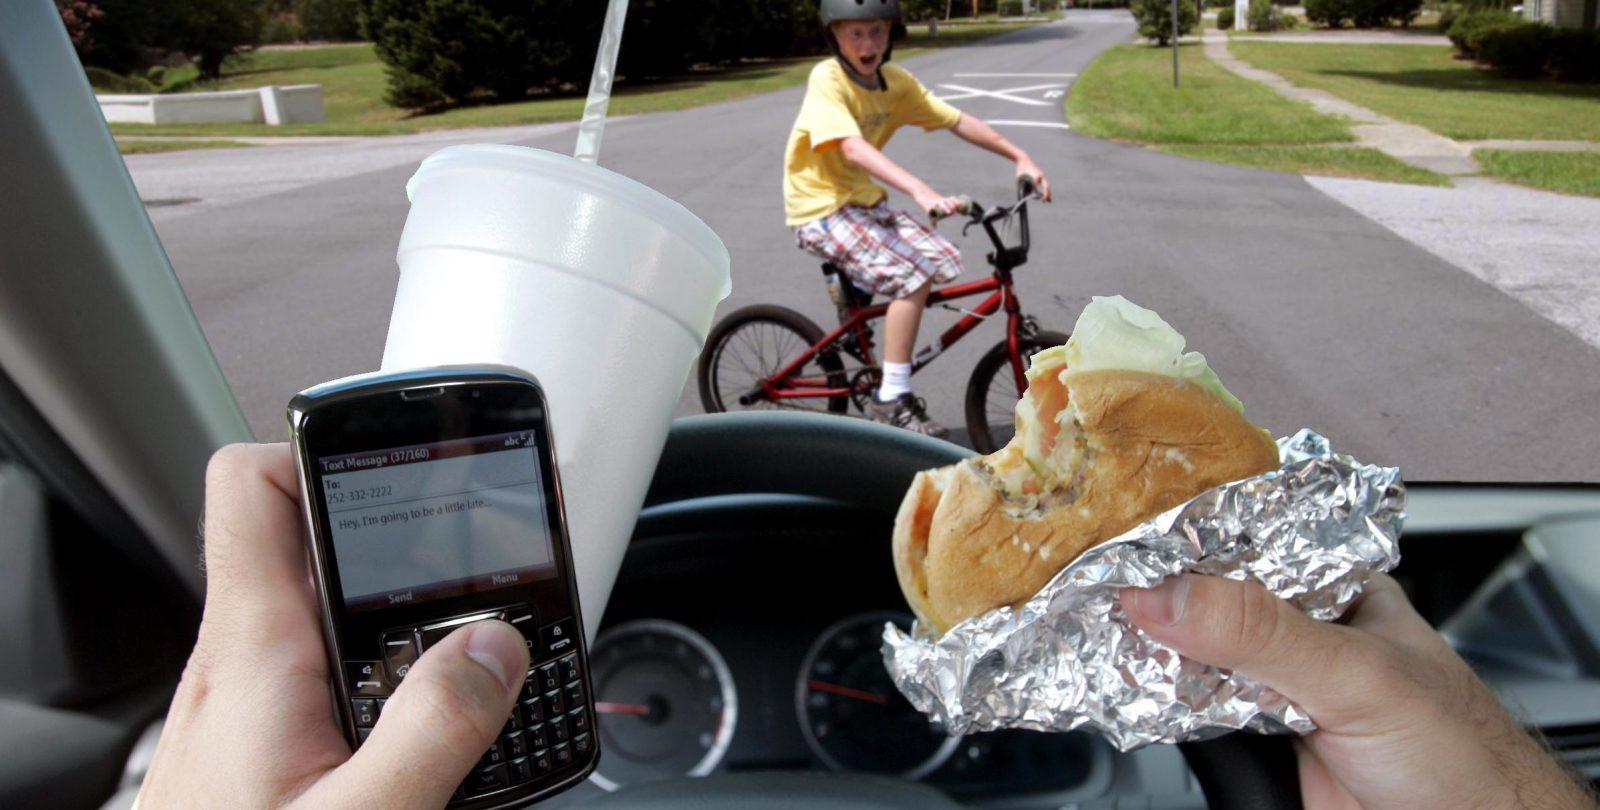 5 Reasons EATING WHILE DRIVING Is A Waste Of Time